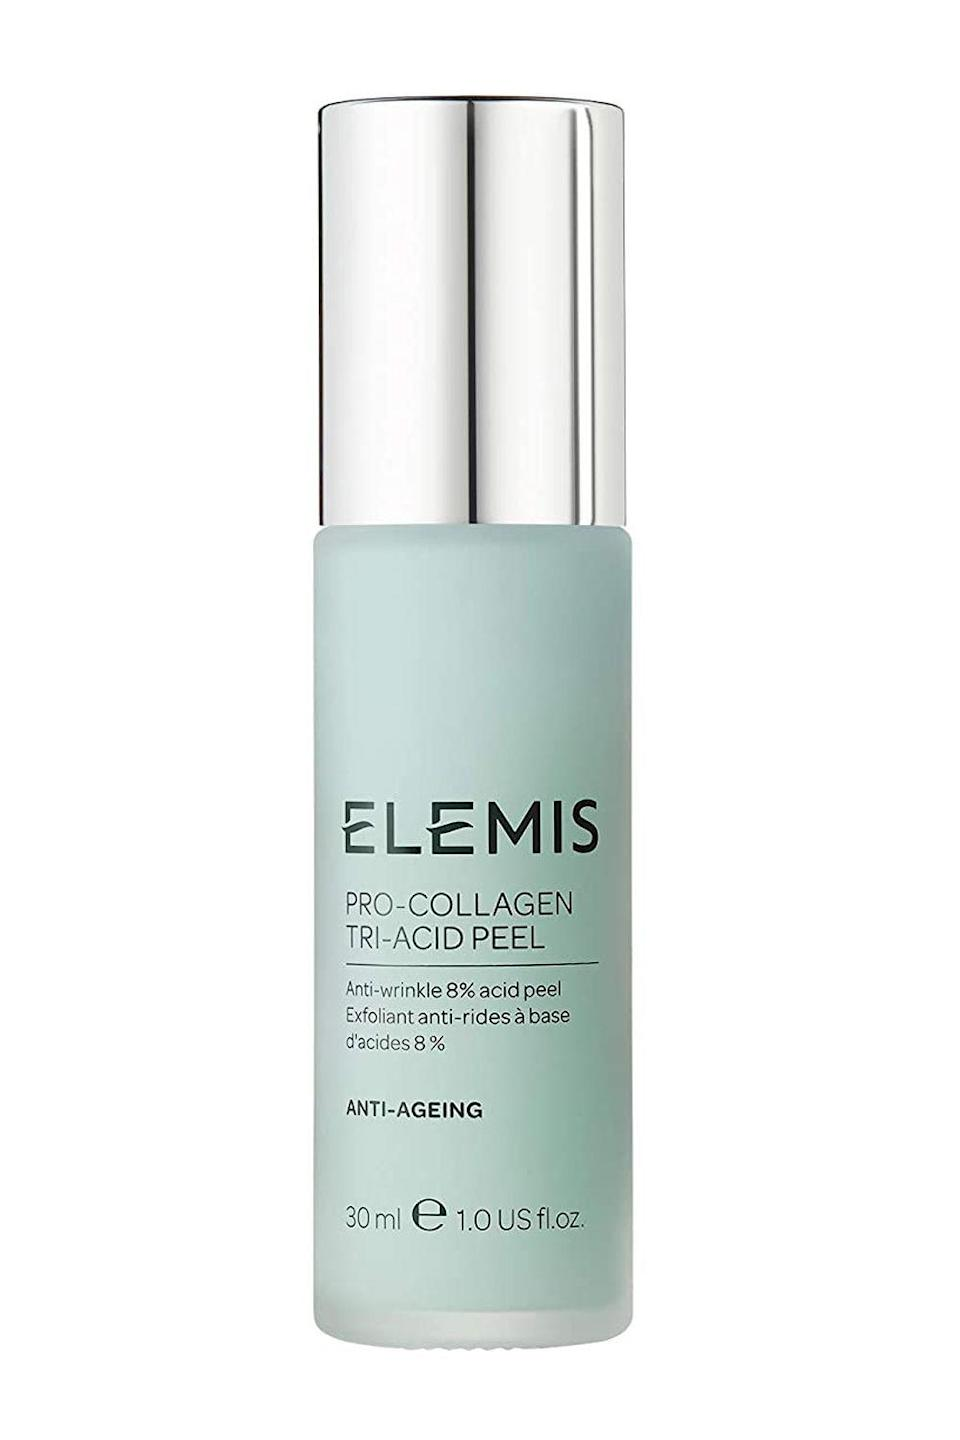 """<p><strong>ELEMIS</strong></p><p>ulta.com</p><p><strong>$110.00</strong></p><p><a href=""""https://go.redirectingat.com?id=74968X1596630&url=https%3A%2F%2Fwww.ulta.com%2Fpro-collagen-tri-acid-peel%3FproductId%3Dpimprod2022677&sref=https%3A%2F%2Fwww.cosmopolitan.com%2Fstyle-beauty%2Fbeauty%2Fg30554130%2Fbest-at-home-face-peel%2F"""" rel=""""nofollow noopener"""" target=""""_blank"""" data-ylk=""""slk:Shop Now"""" class=""""link rapid-noclick-resp"""">Shop Now</a></p><p>Fine lines who? This at home chemical is <strong>specifically designed to plump fine lines and <a href=""""https://www.cosmopolitan.com/style-beauty/beauty/g13812654/best-anti-wrinkle-cream/"""" rel=""""nofollow noopener"""" target=""""_blank"""" data-ylk=""""slk:smooth wrinkles"""" class=""""link rapid-noclick-resp"""">smooth wrinkles</a>,</strong> thanks to a blend of lactobionic, asiatic, and mandelic acids, plus plant-based ingredients to support a healthy moisture barrier.</p>"""